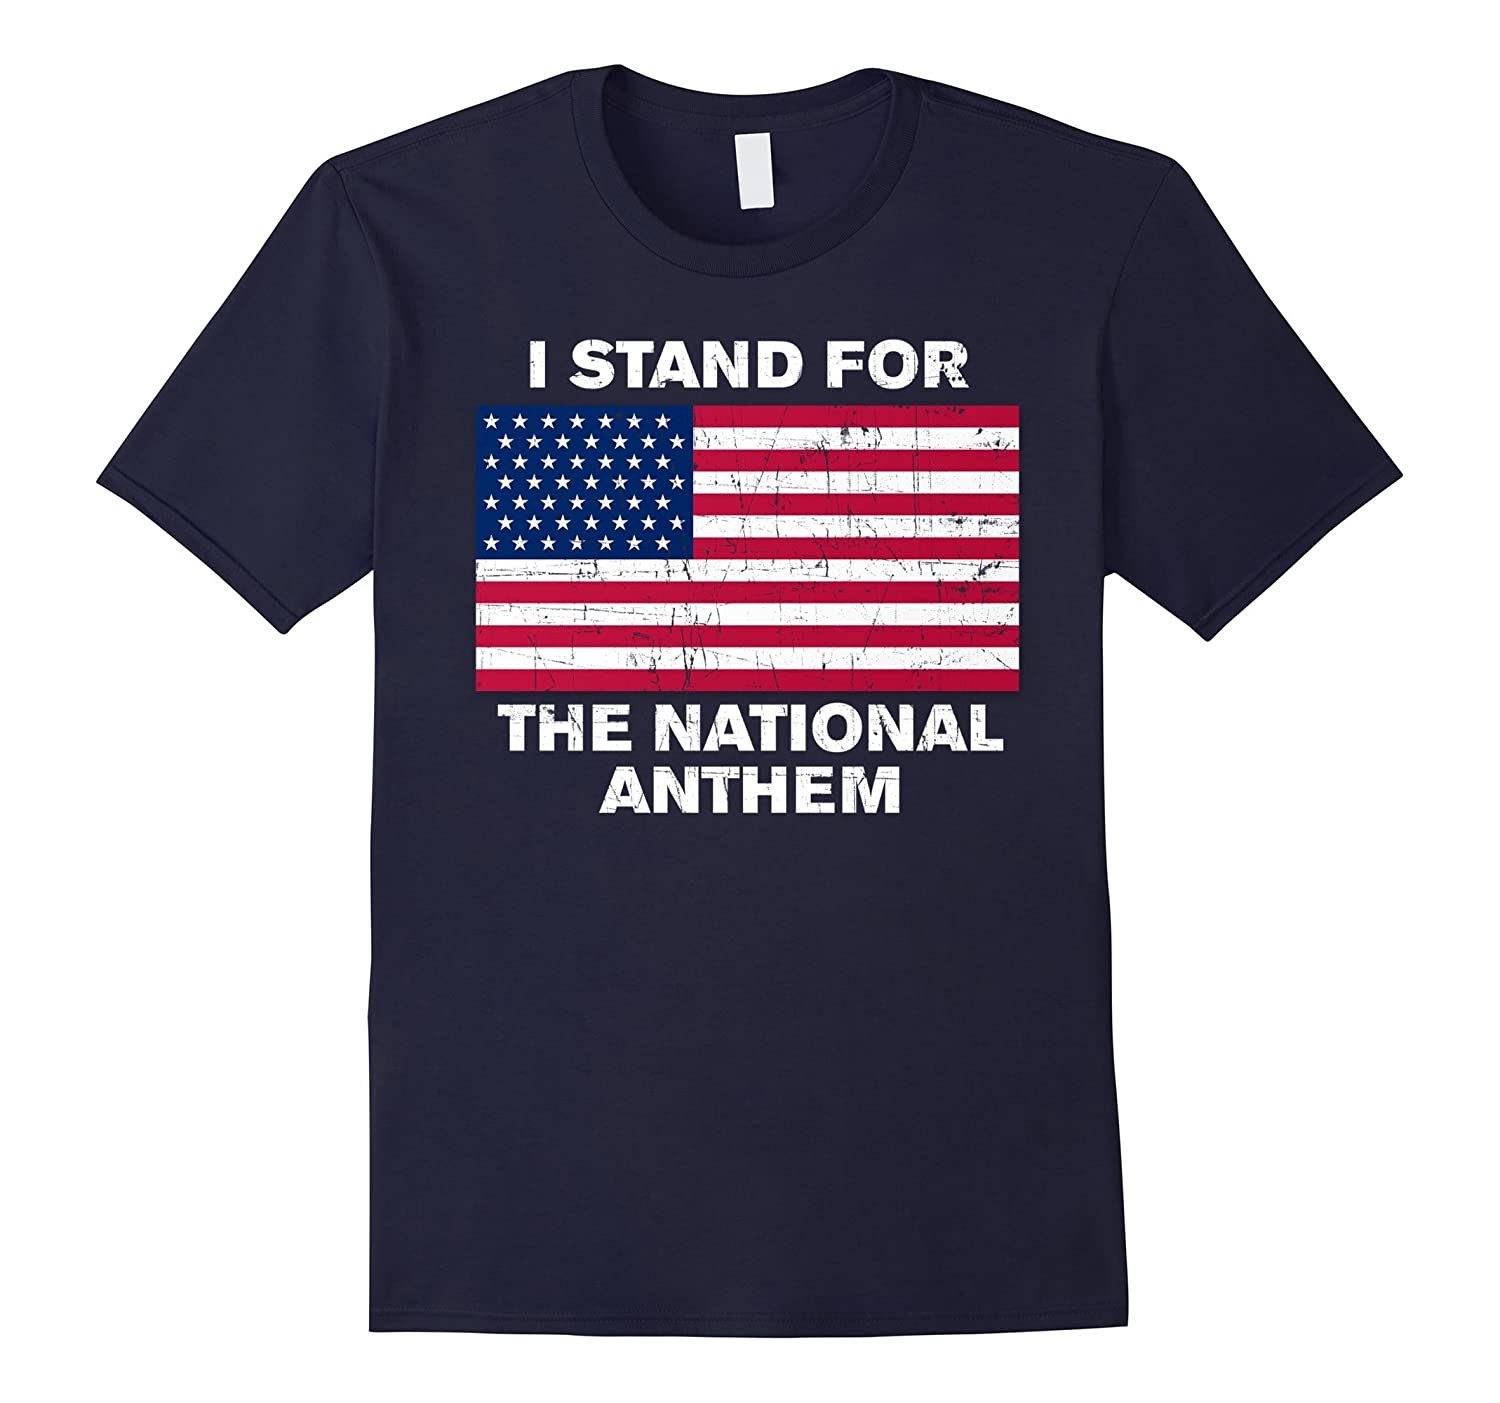 I Stand for the National Anthem Shirts USA Flag-TJ